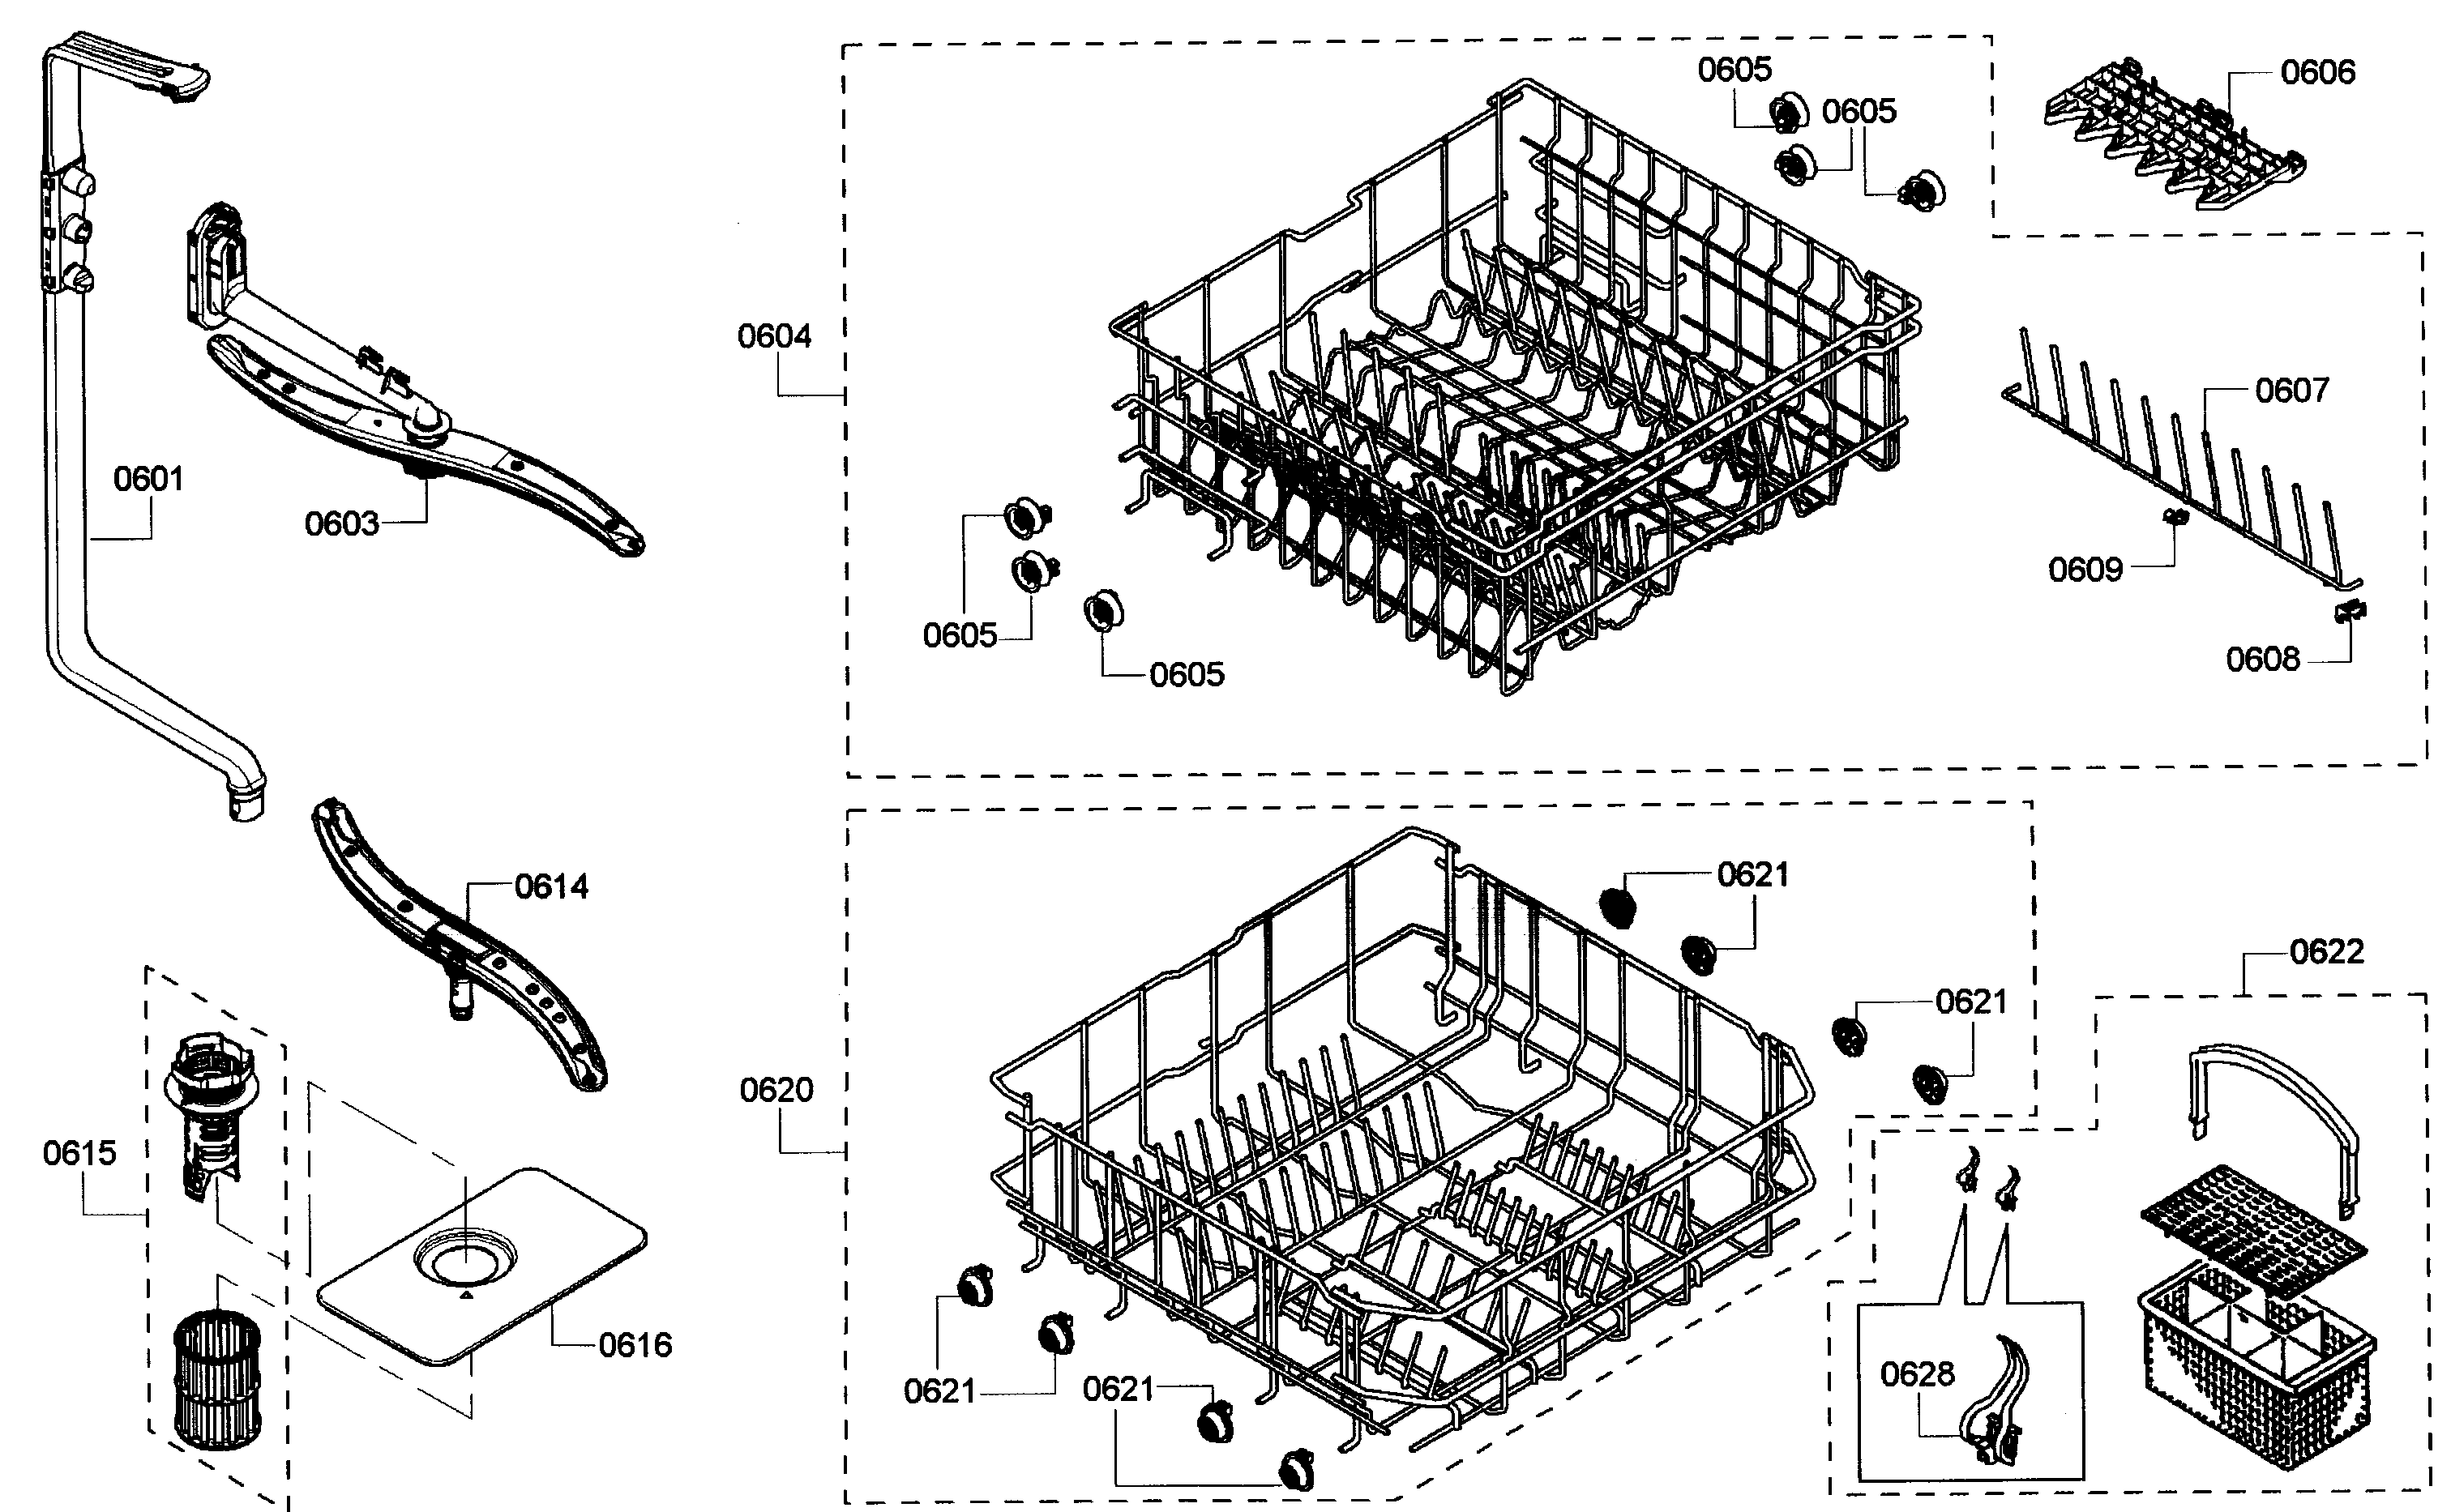 BASKETS Diagram & Parts List for Model 63013909010 Kenmore